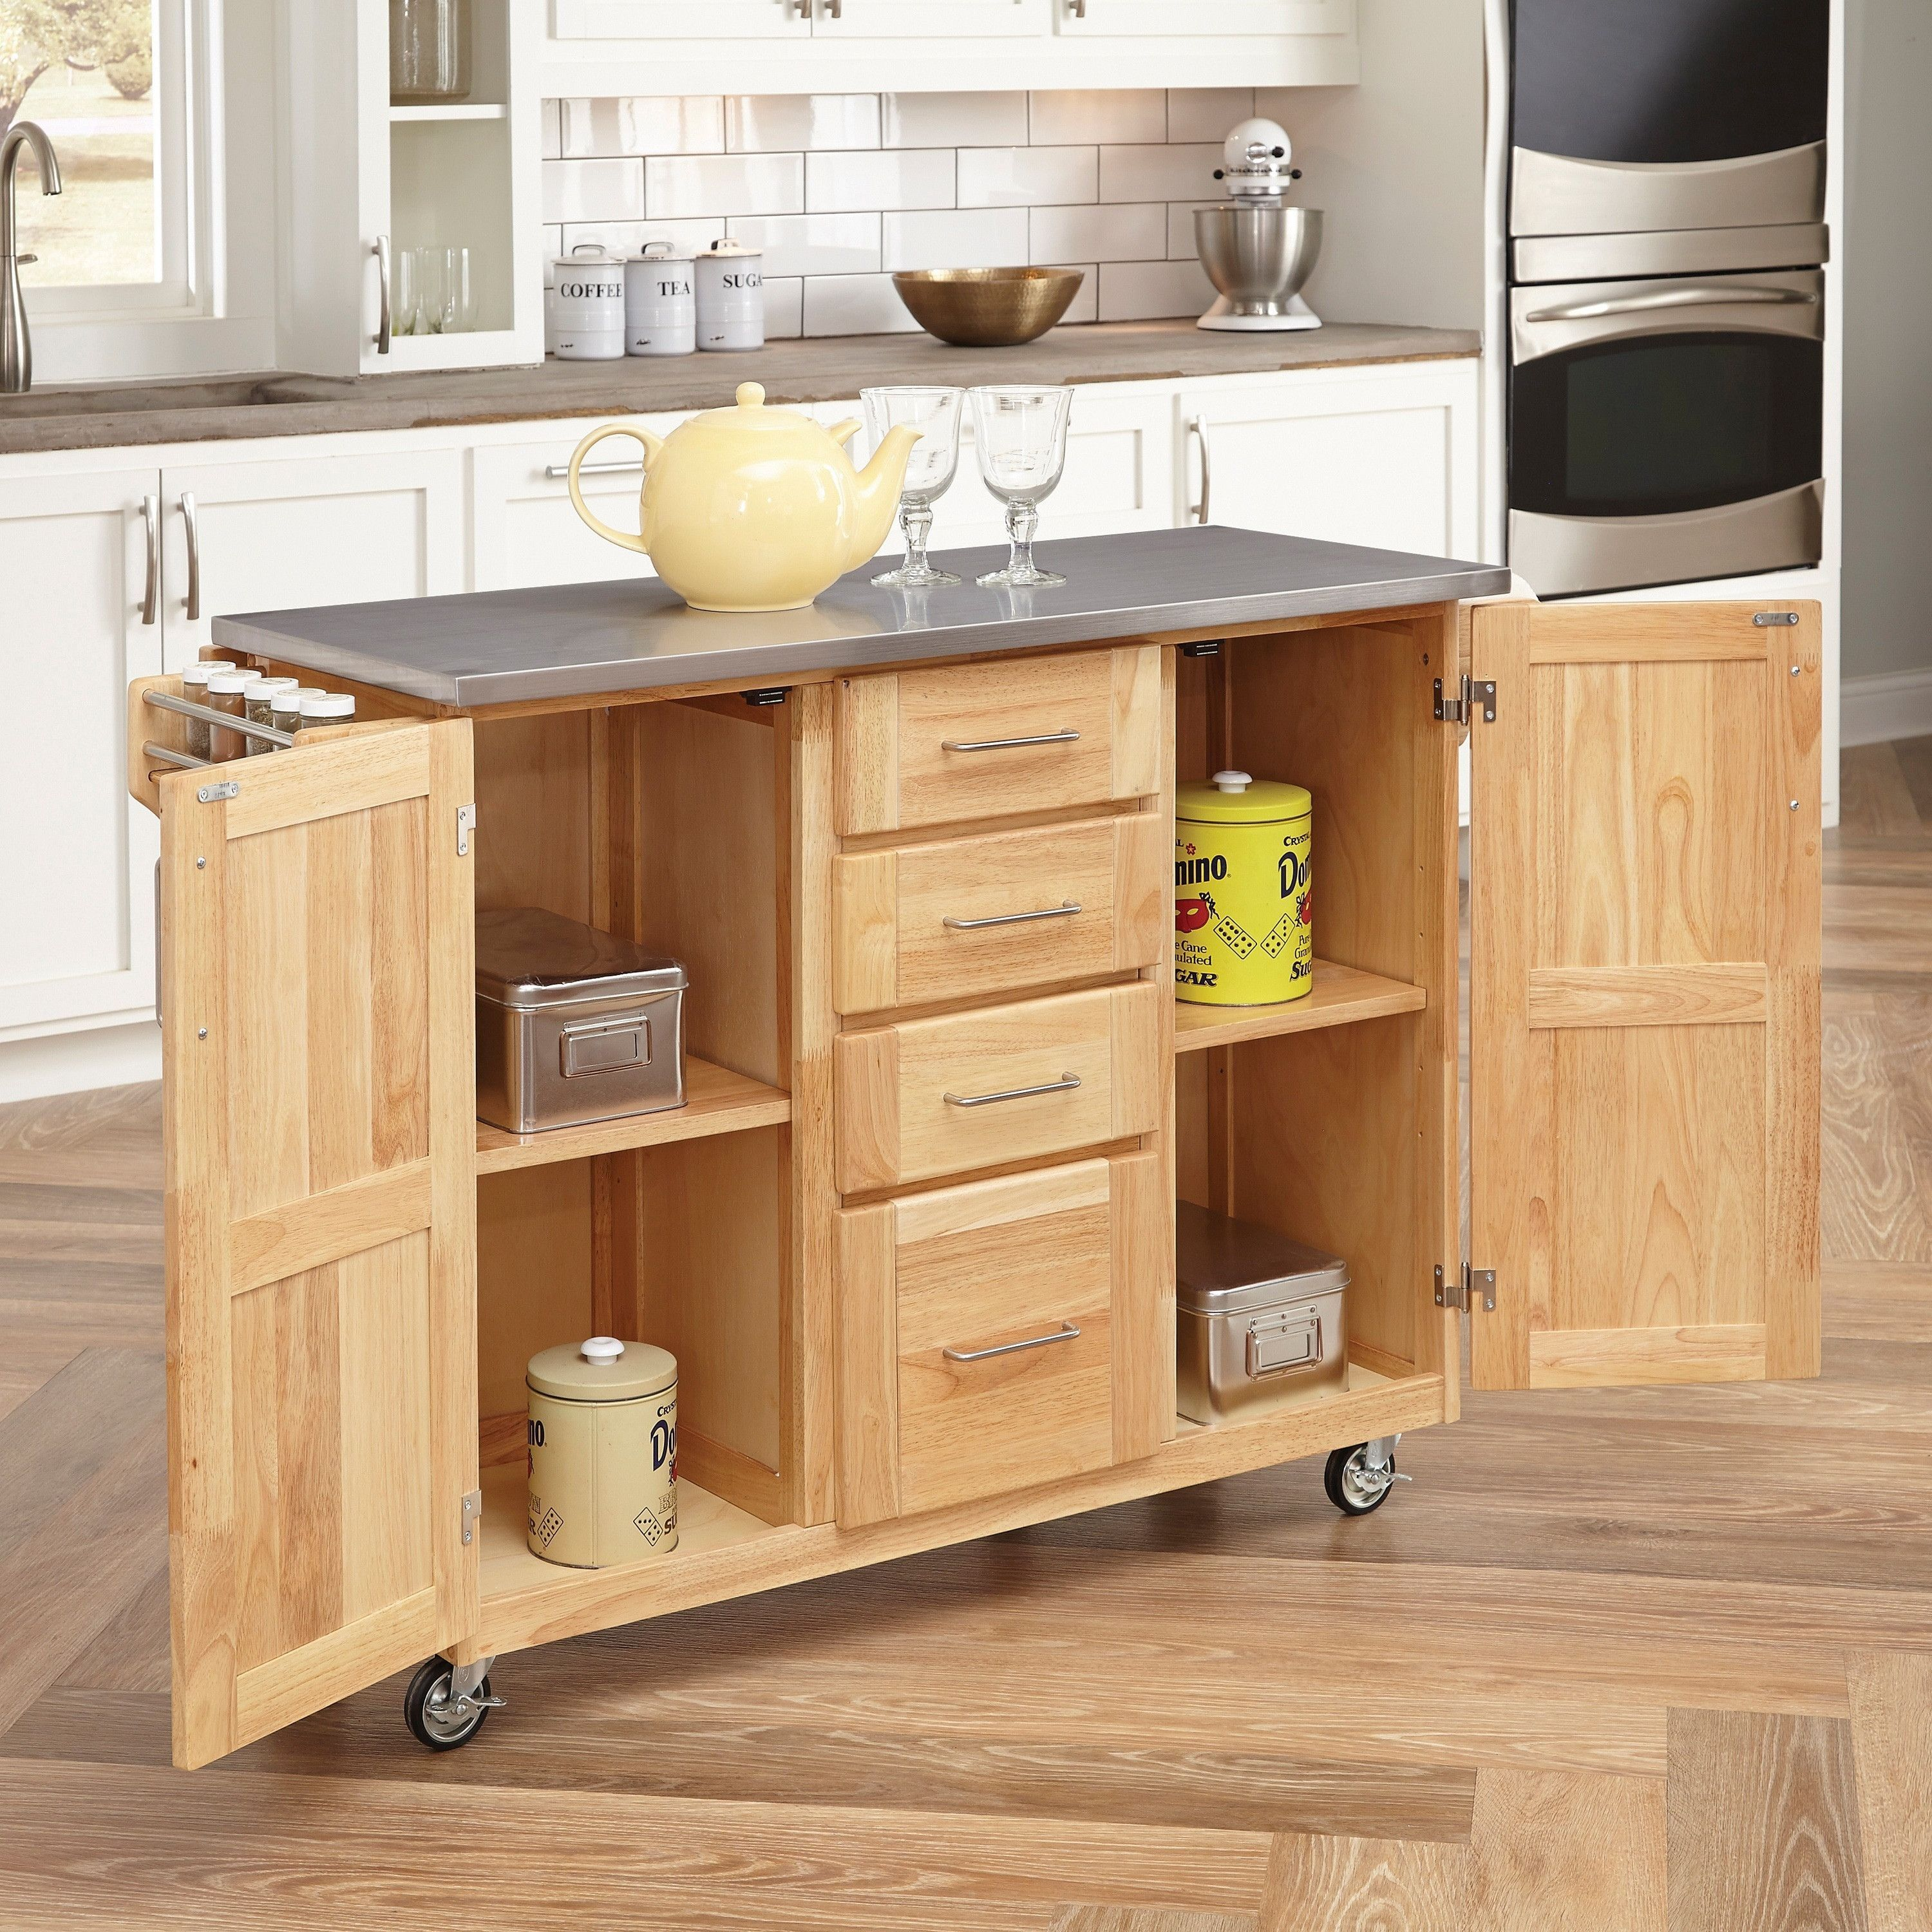 Style Modern Material Metal Stainless Steel Steel Wood Assembly Assembly Required Cart Type Kitch Kitchen Furniture Kitchen Design Breakfast Bar Kitchen